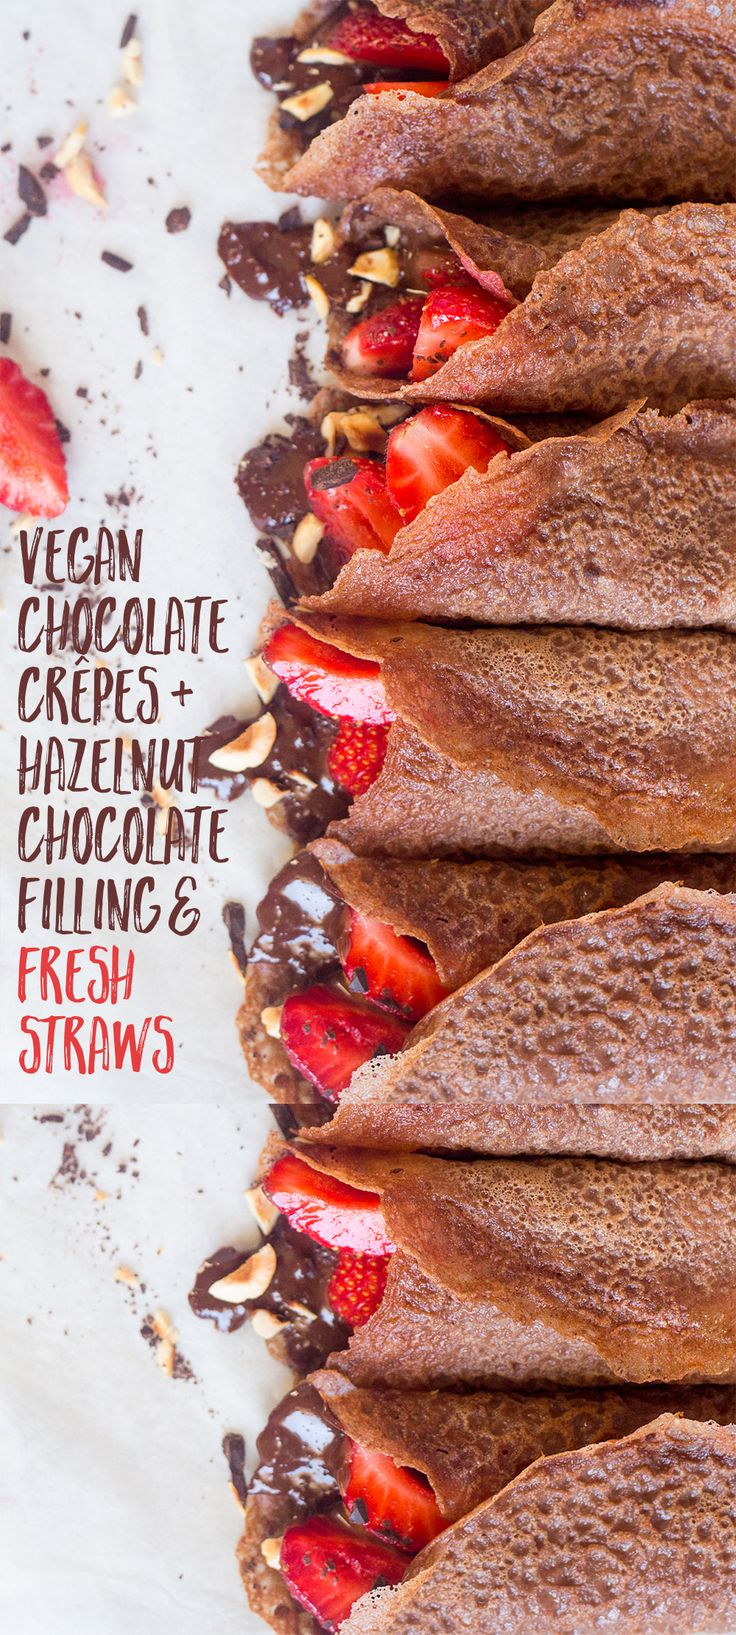 Vegan Chocolate Crêpes with Hazelnut Chocolate Filling and Fresh Strawberries Lazy Cat Kitchen V